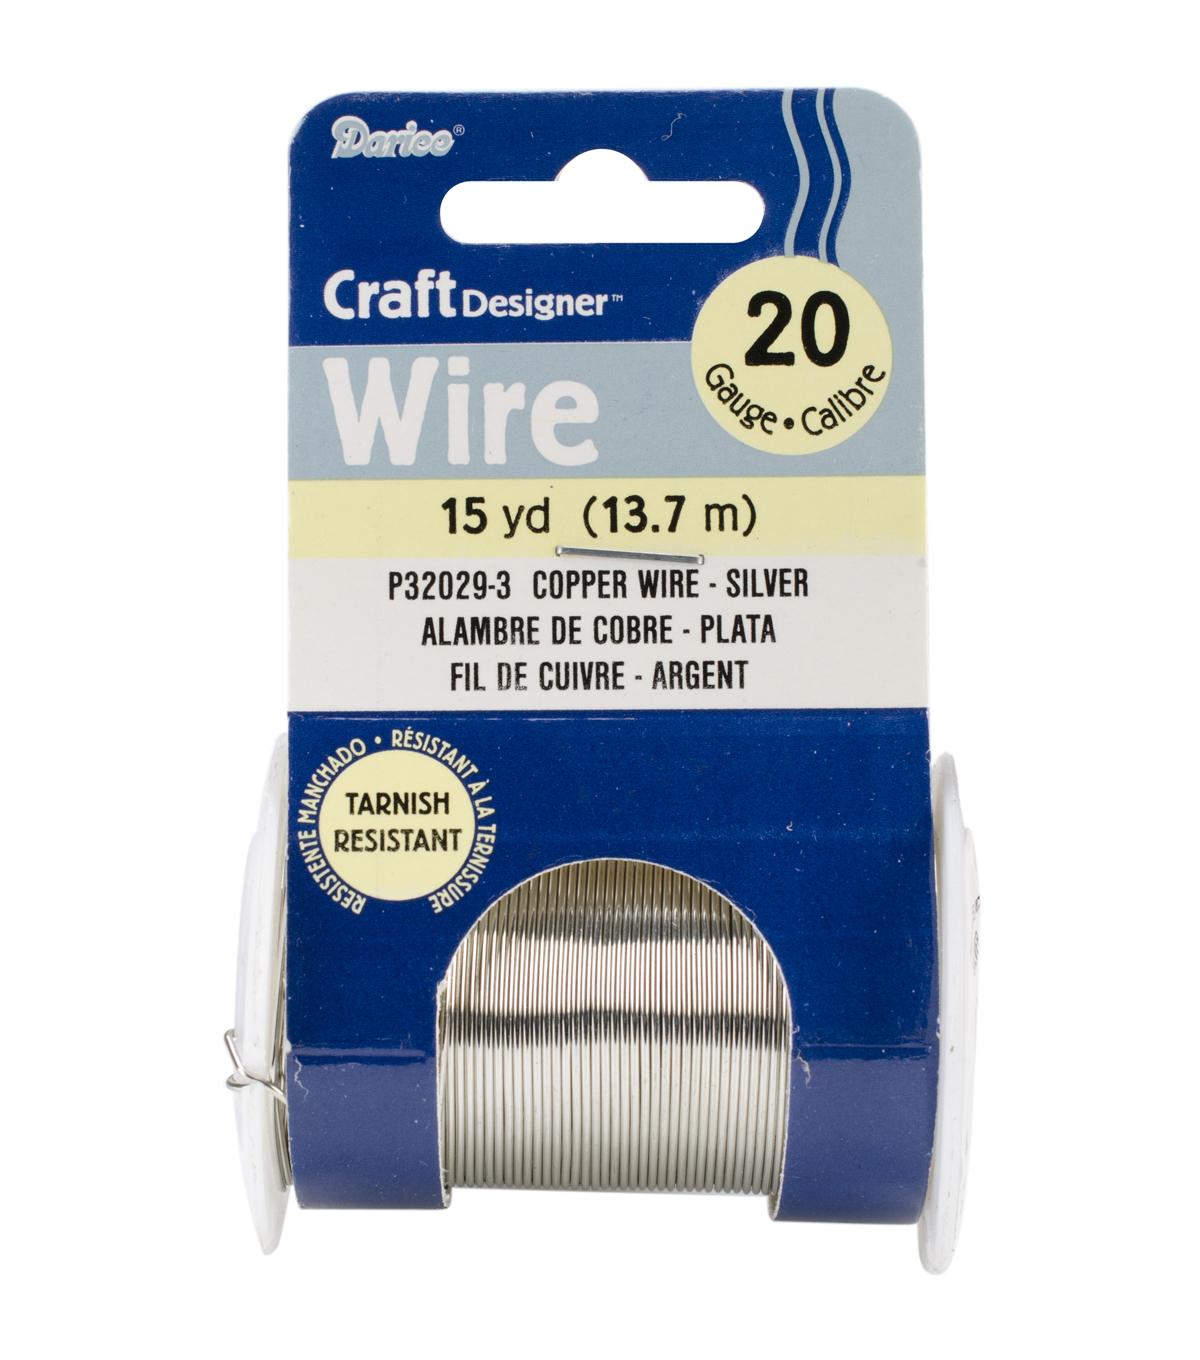 Beading wire gauge wire center beading wire 20 gauge 15yd pkg silver colored copper wire joann rh joann com beading wire chart beading wire 24 gauge greentooth Image collections